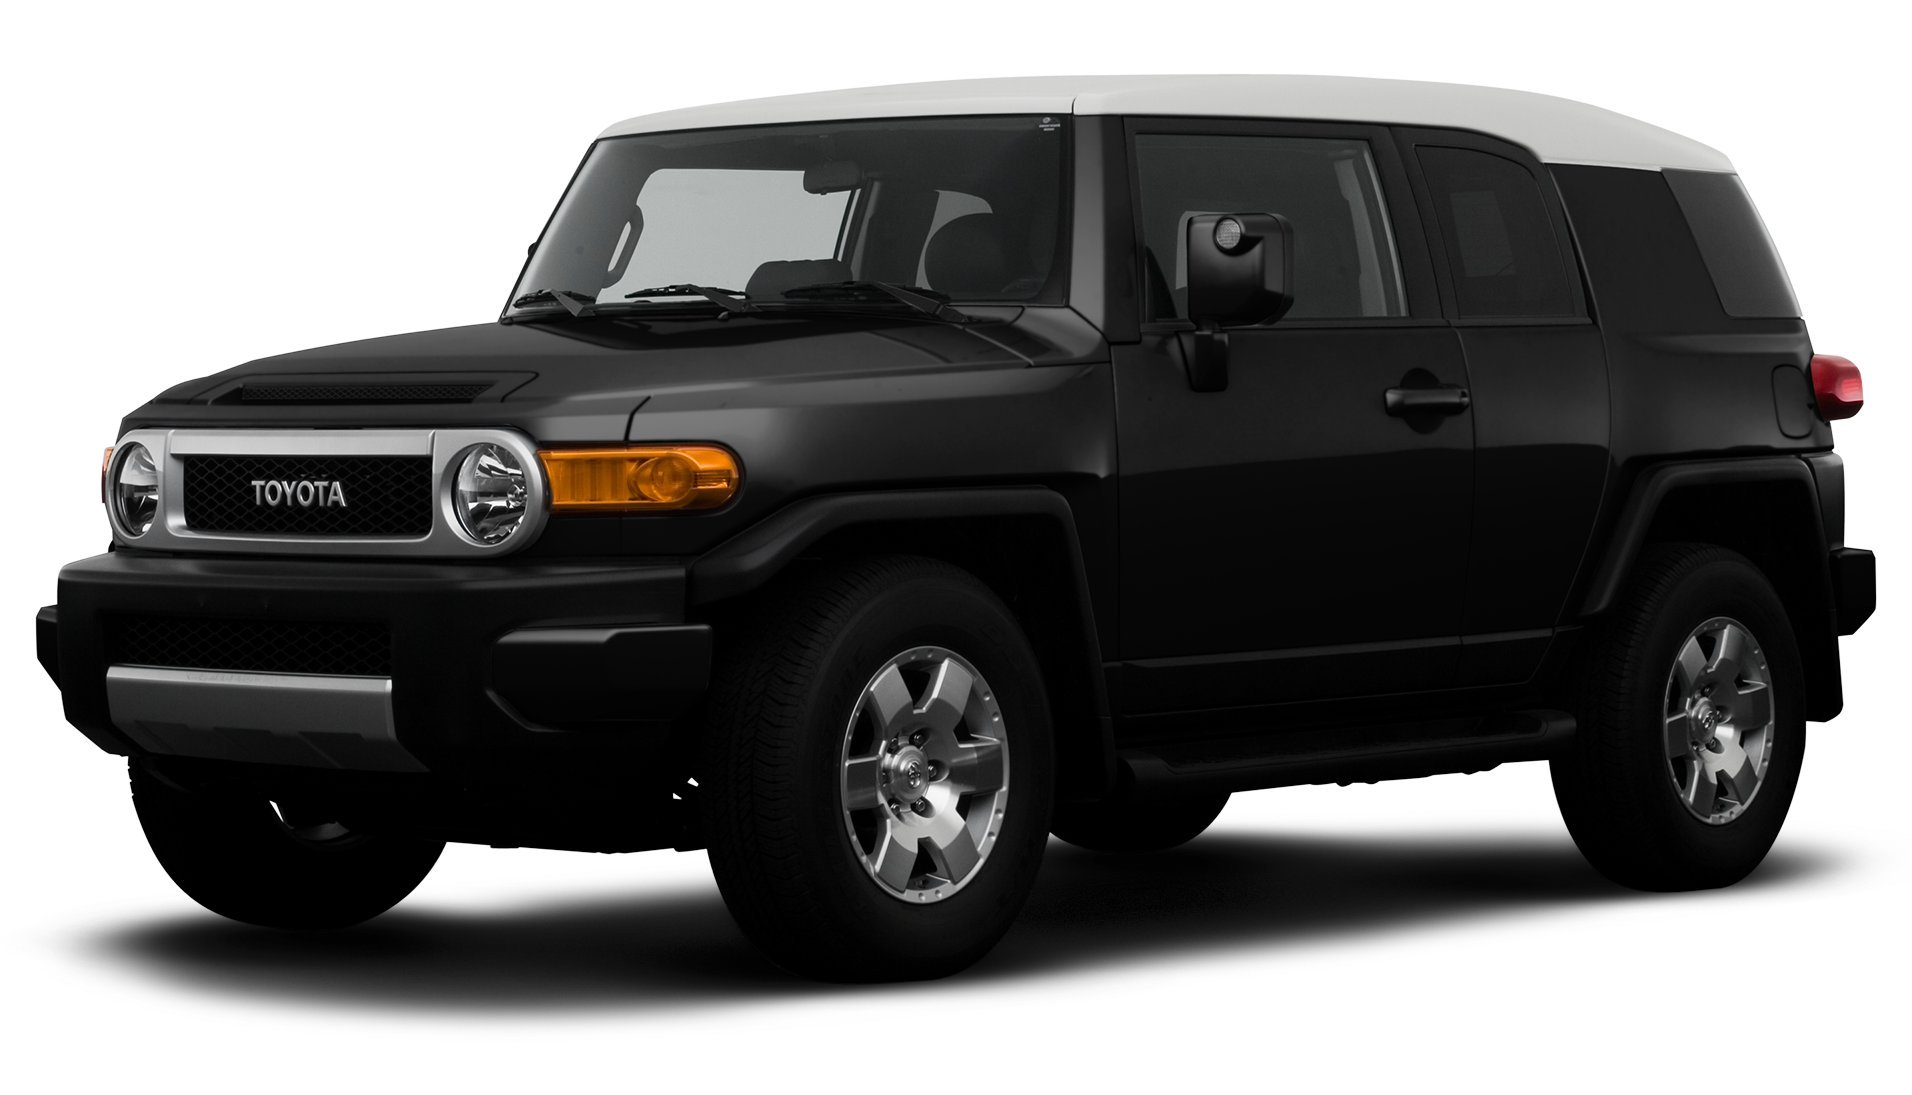 2008 Toyota Fj Cruiser Reviews Images And Specs Vehicles Trailer Wiring 4 Wheel Drive Door Automatic Transmission Gs